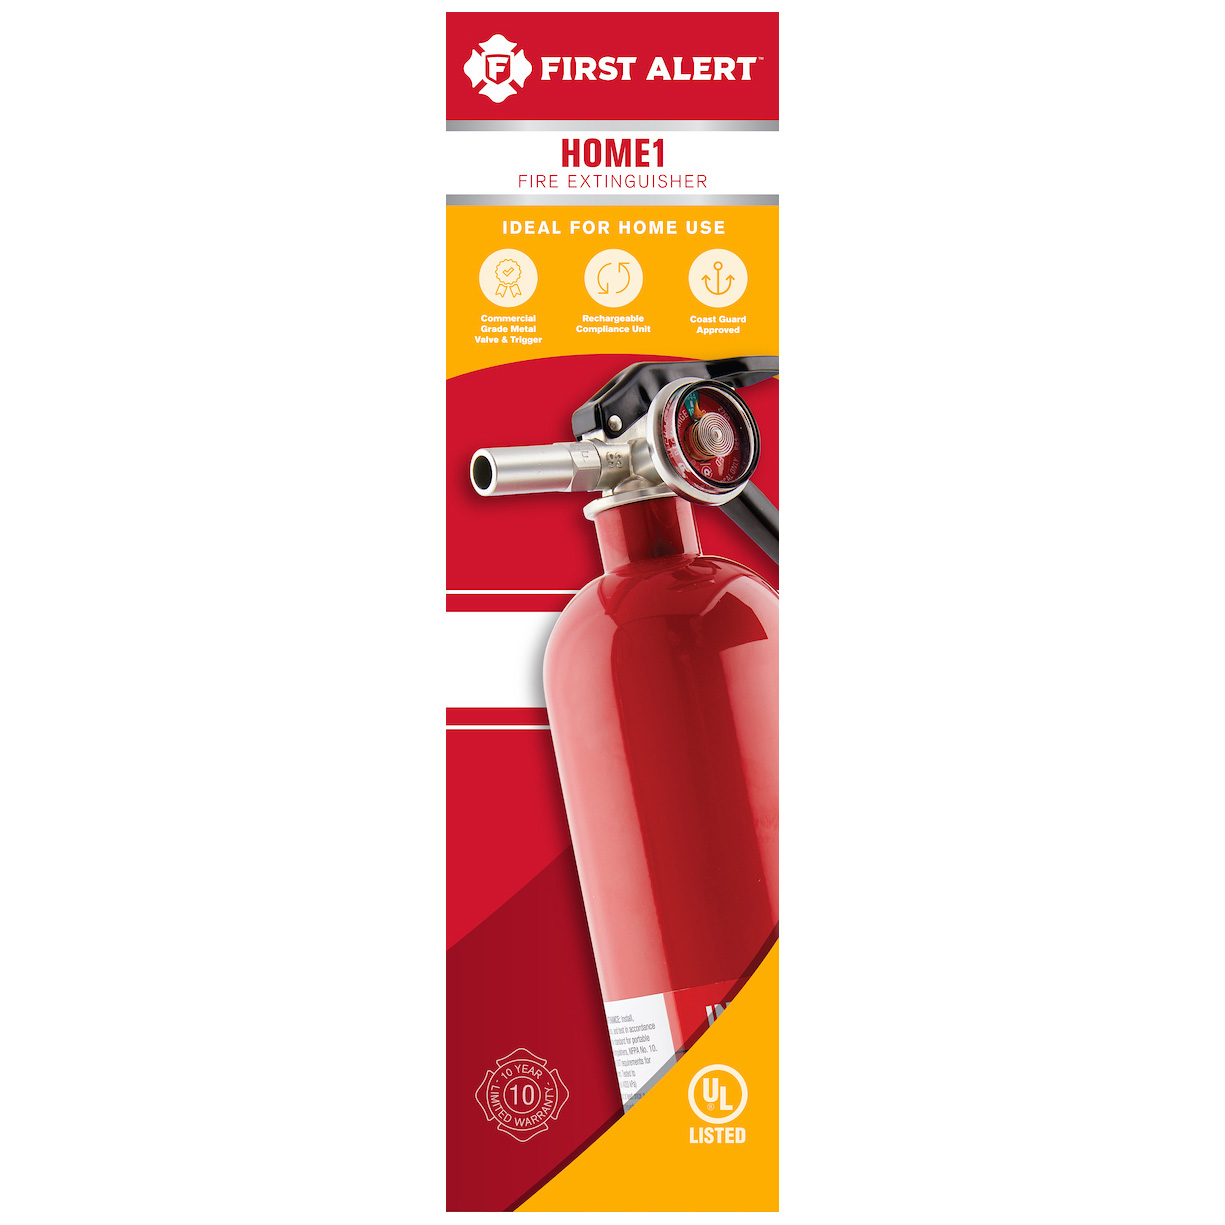 First Alert Rechargeable Home Fire Extinguisher UL Rated 1-A, 10-B:C (Red) - HOME1